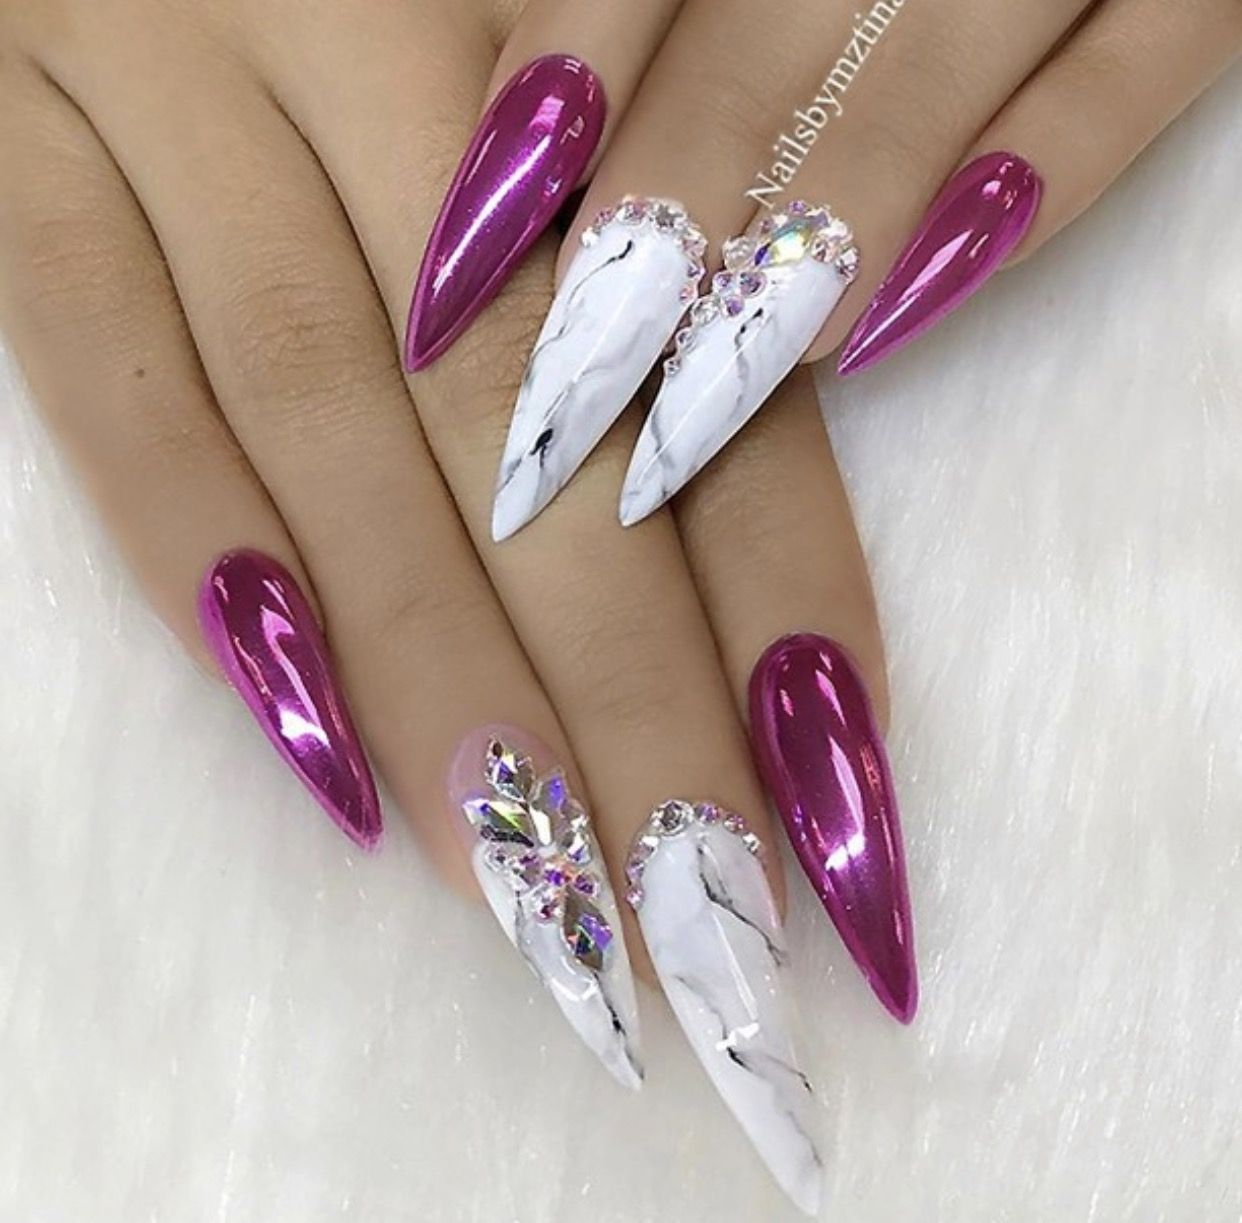 Marble Nail Art Stiletto: Fuchsia Holographic Chrome And White Marble Effect